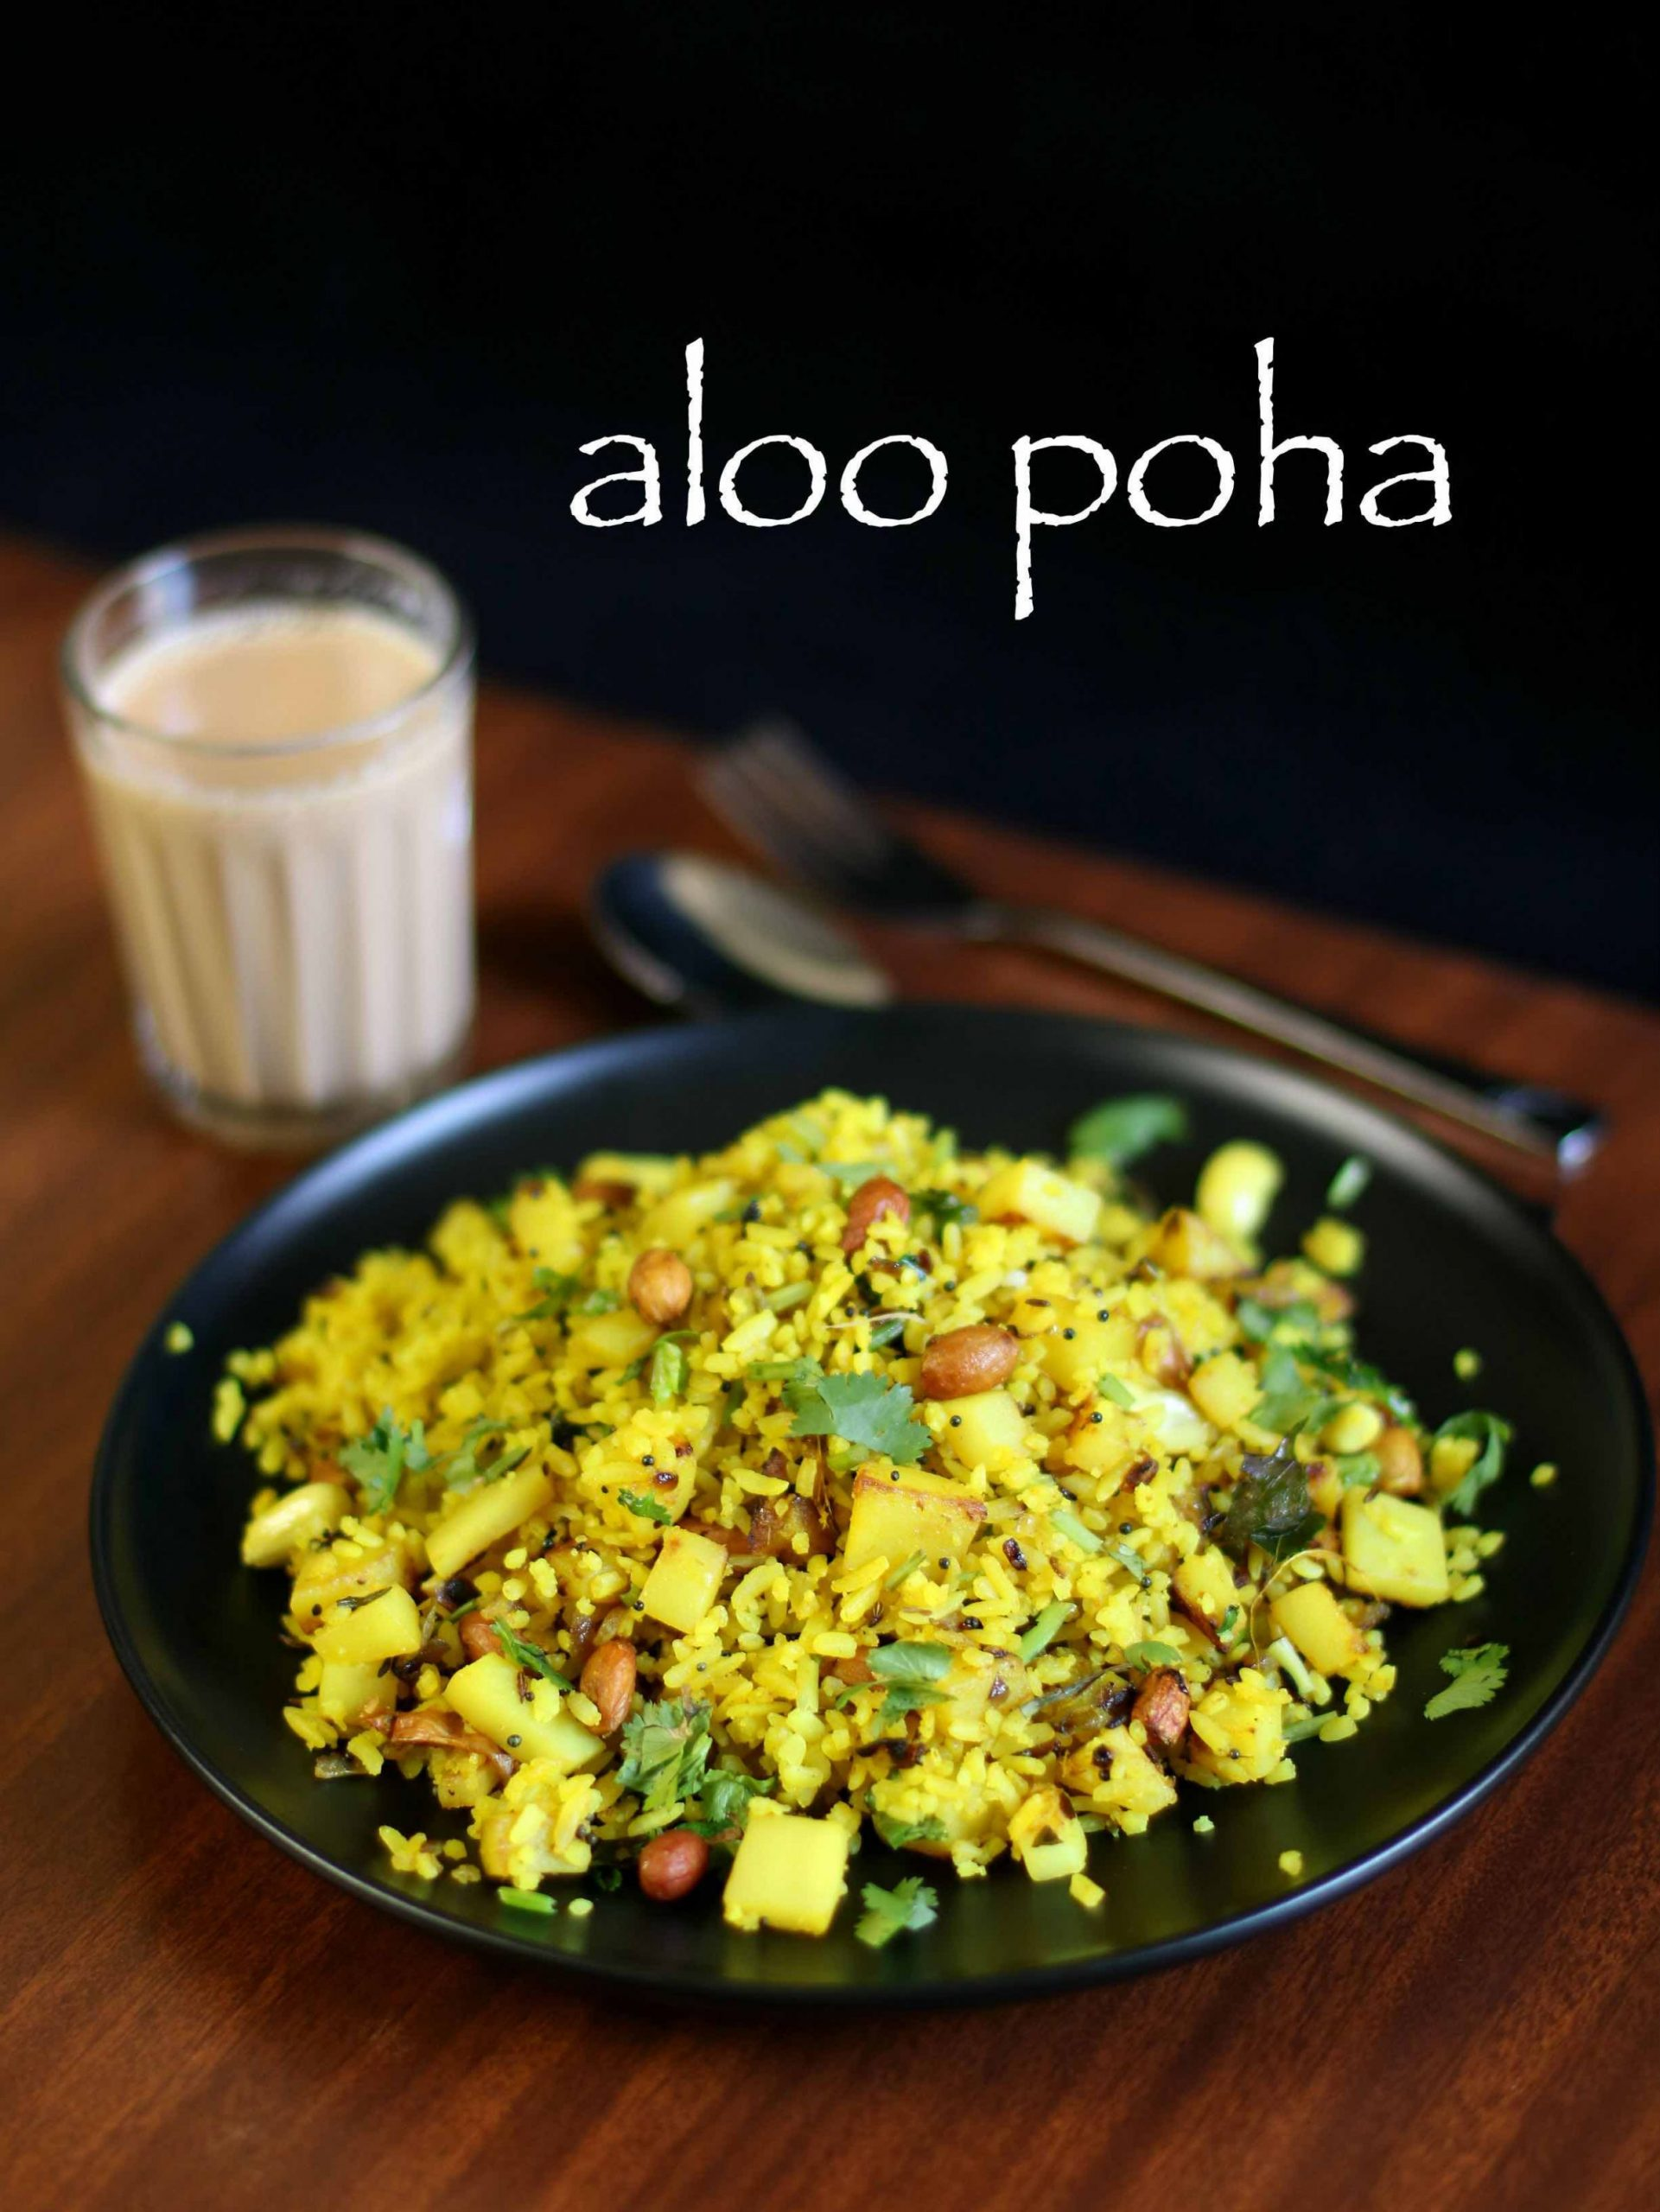 poha recipe | aloo poha recipe | aloo kandha poha | batata poha recipe - Breakfast Recipes Using Poha